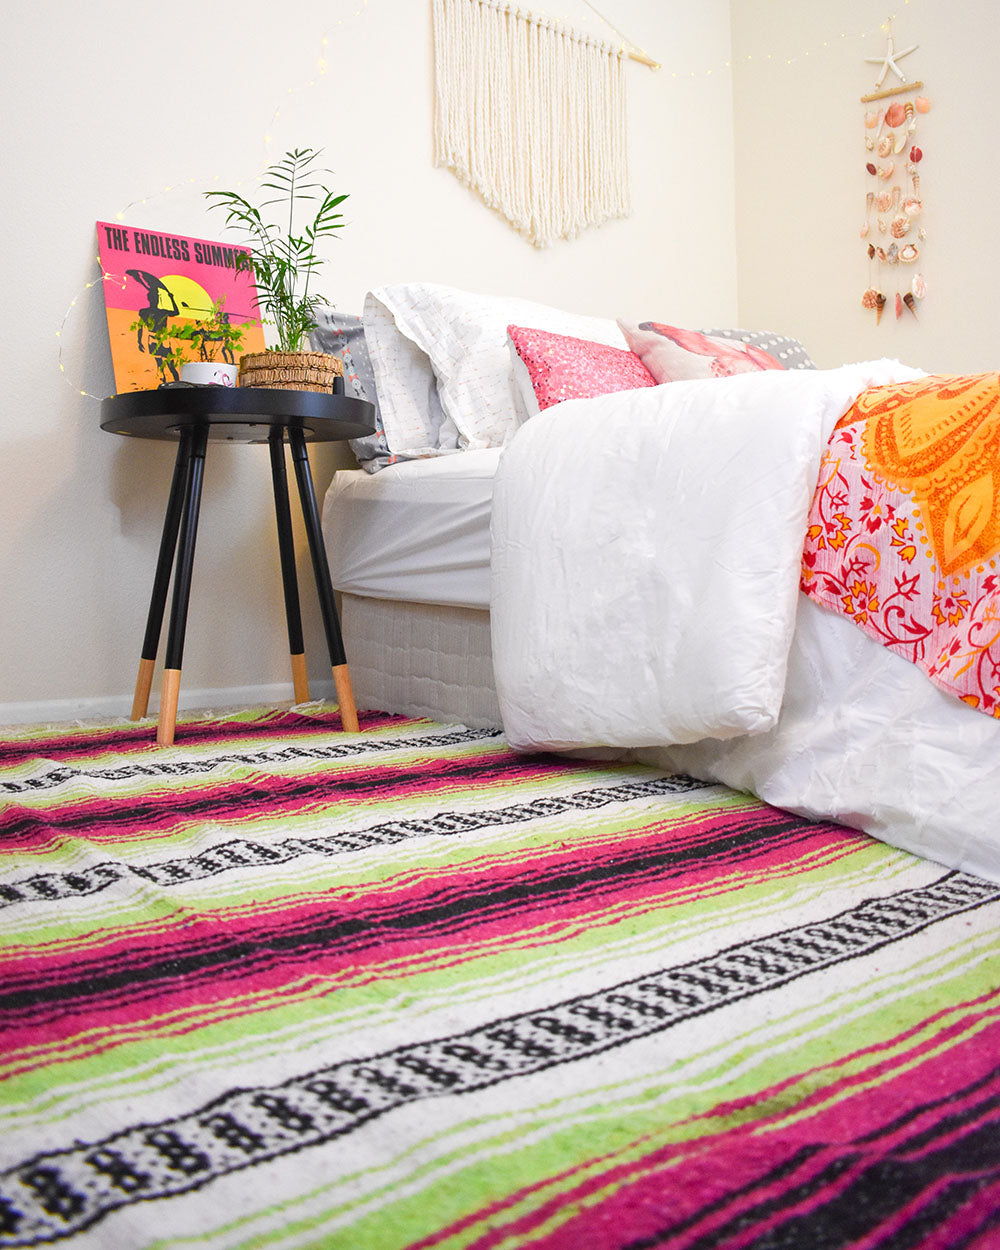 The Bohemian Fiesta Blankets are a true multipurpose blanket. Use it as a floor rug, a throw blanket on your bed or chair, hang on the wall, or take it with you to a grassy area for an outdoors study session or just to lay back relax and look up at the sky.